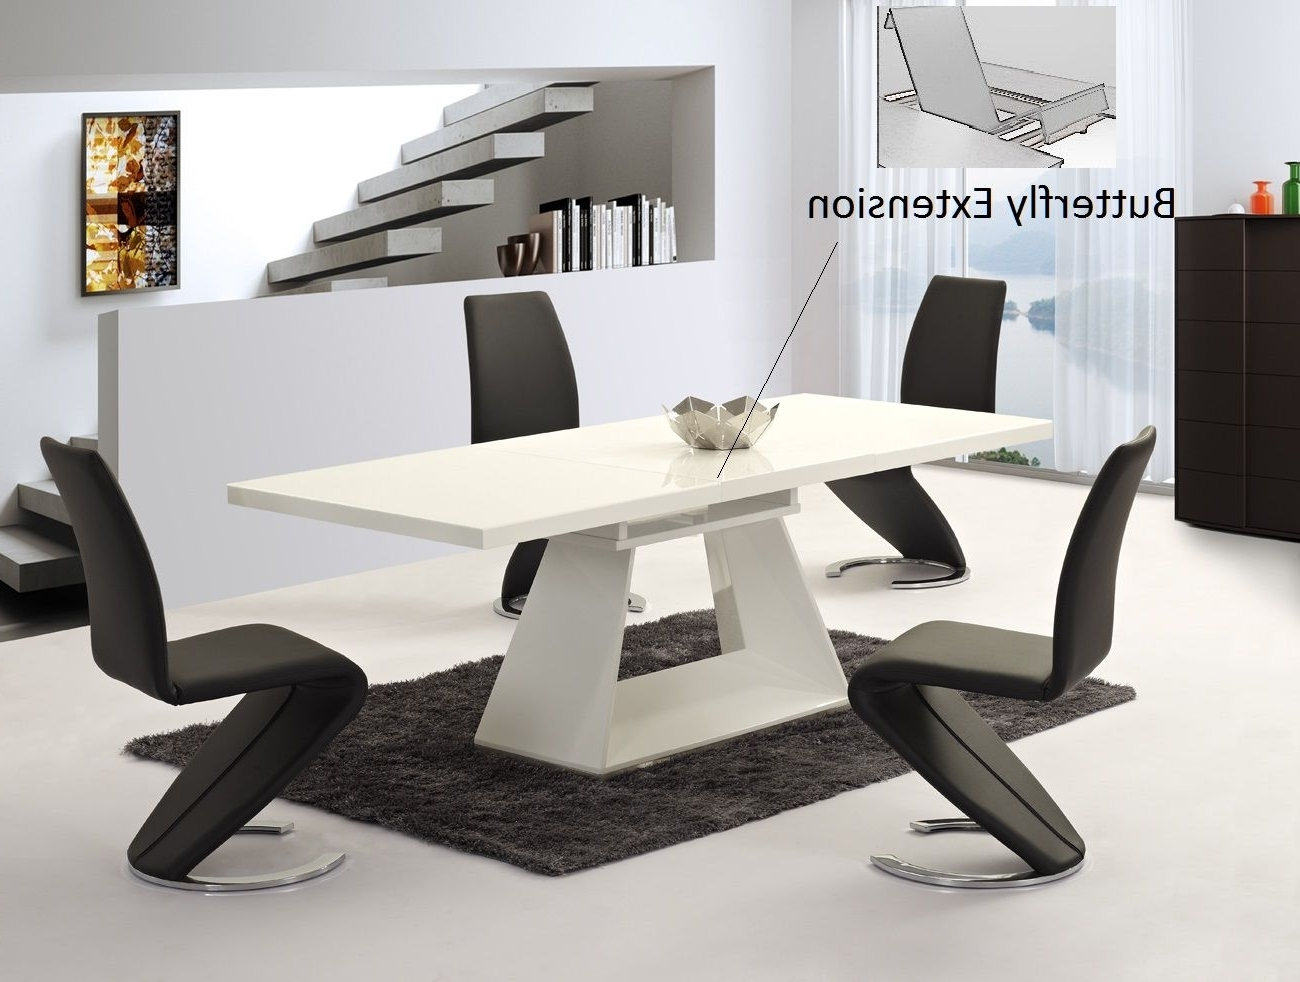 Ga Silvano Extending White Gloss 160 220Cm Dining Table & Luciano Chairs for Most Up-to-Date White High Gloss Dining Tables 6 Chairs